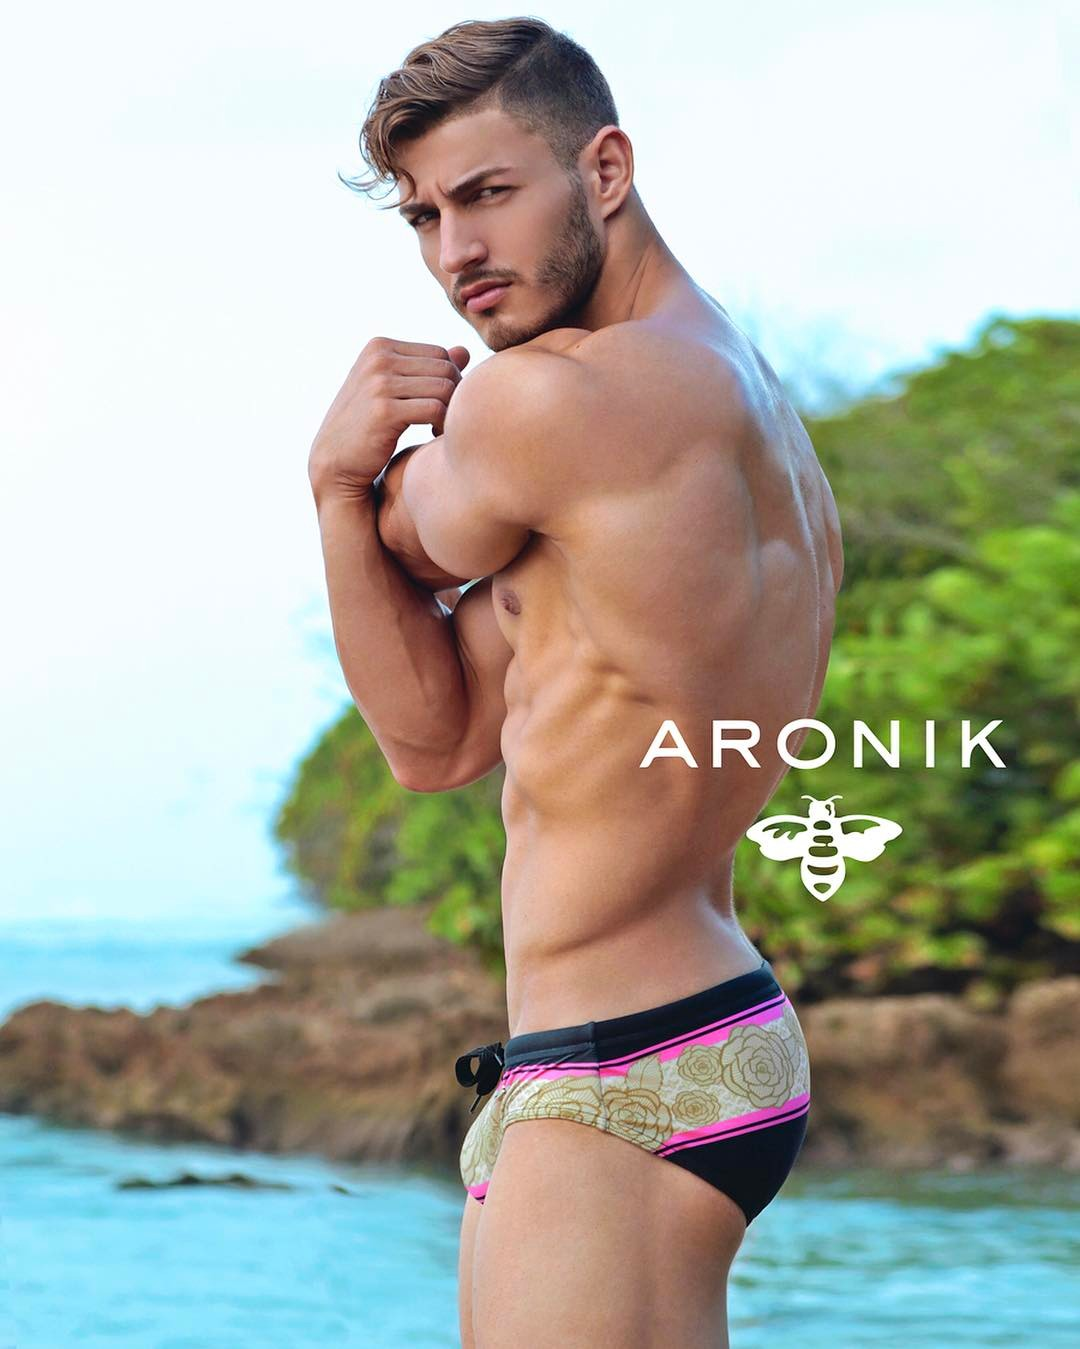 Kevin David by Edwin Lebron for Aronik